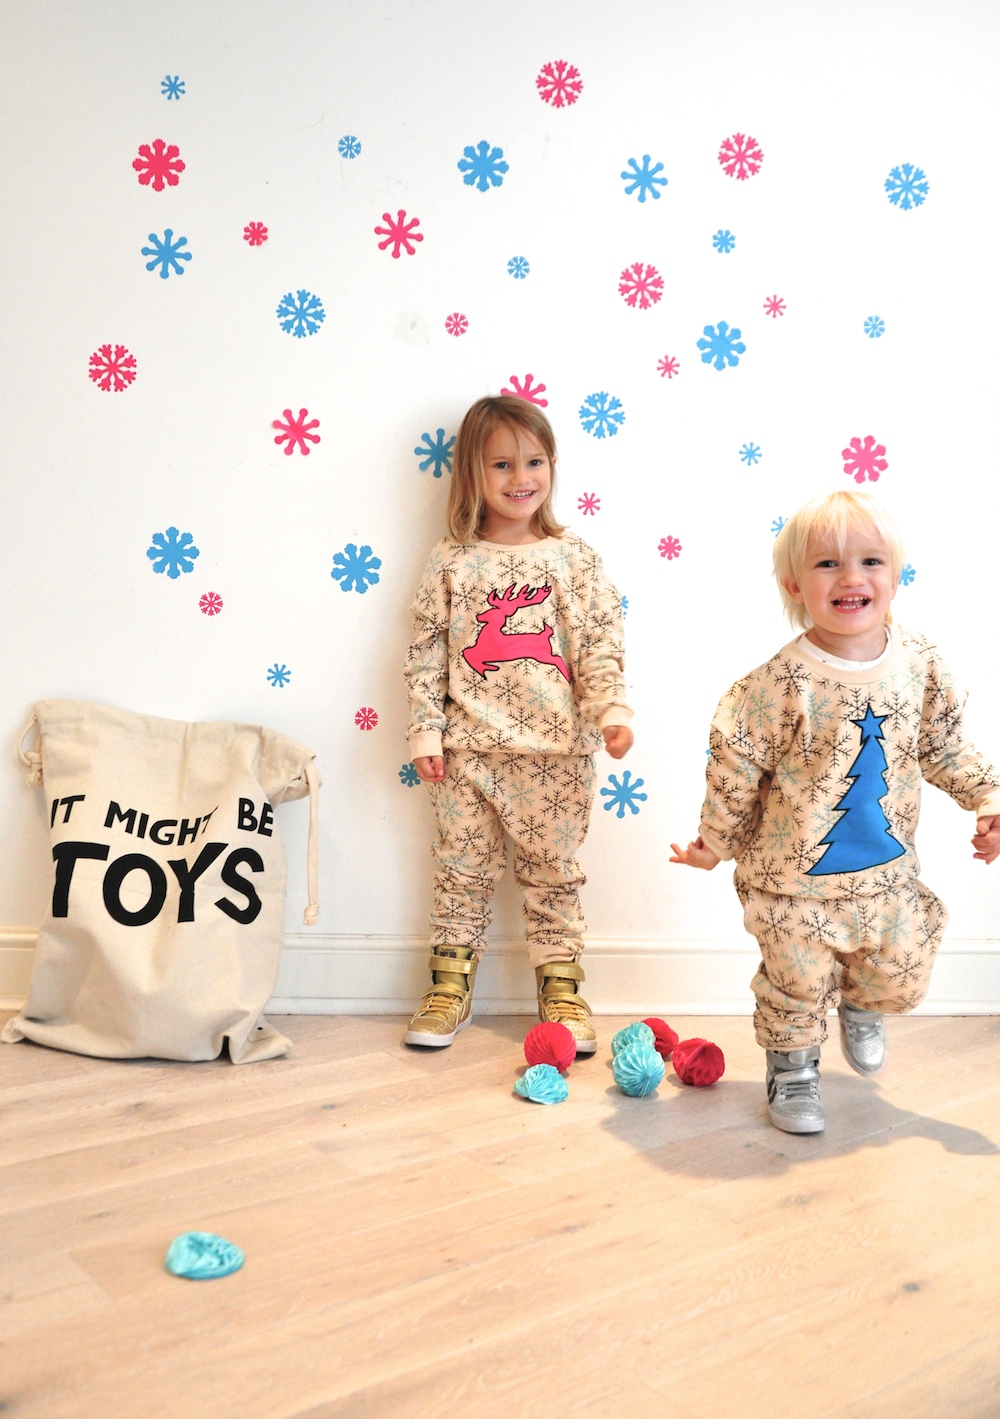 Gardner_and_the_gang_harrods_miniharrods_Christmas_tellkiddo_kidsen_34